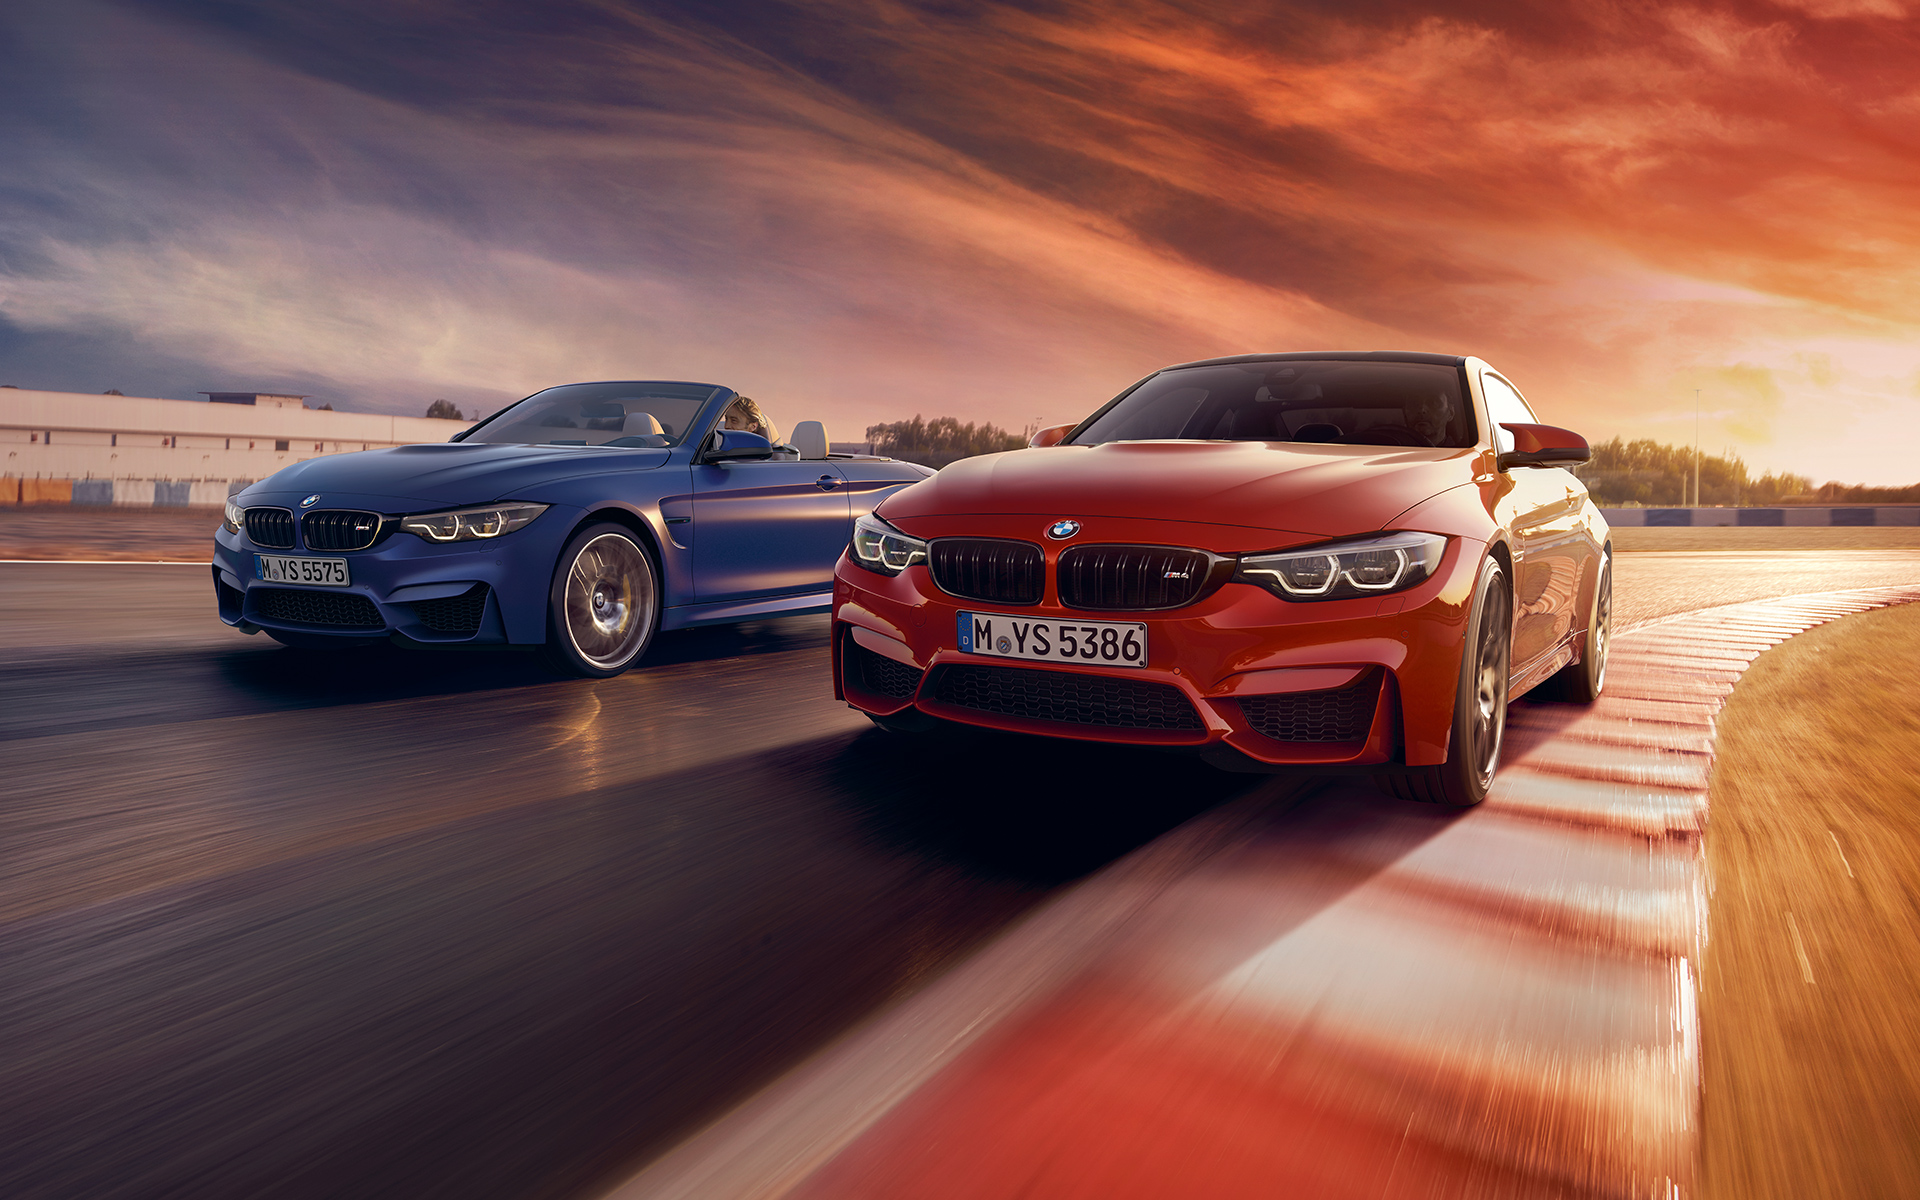 BMW M4 Coupé and M3 Sedan - Front View